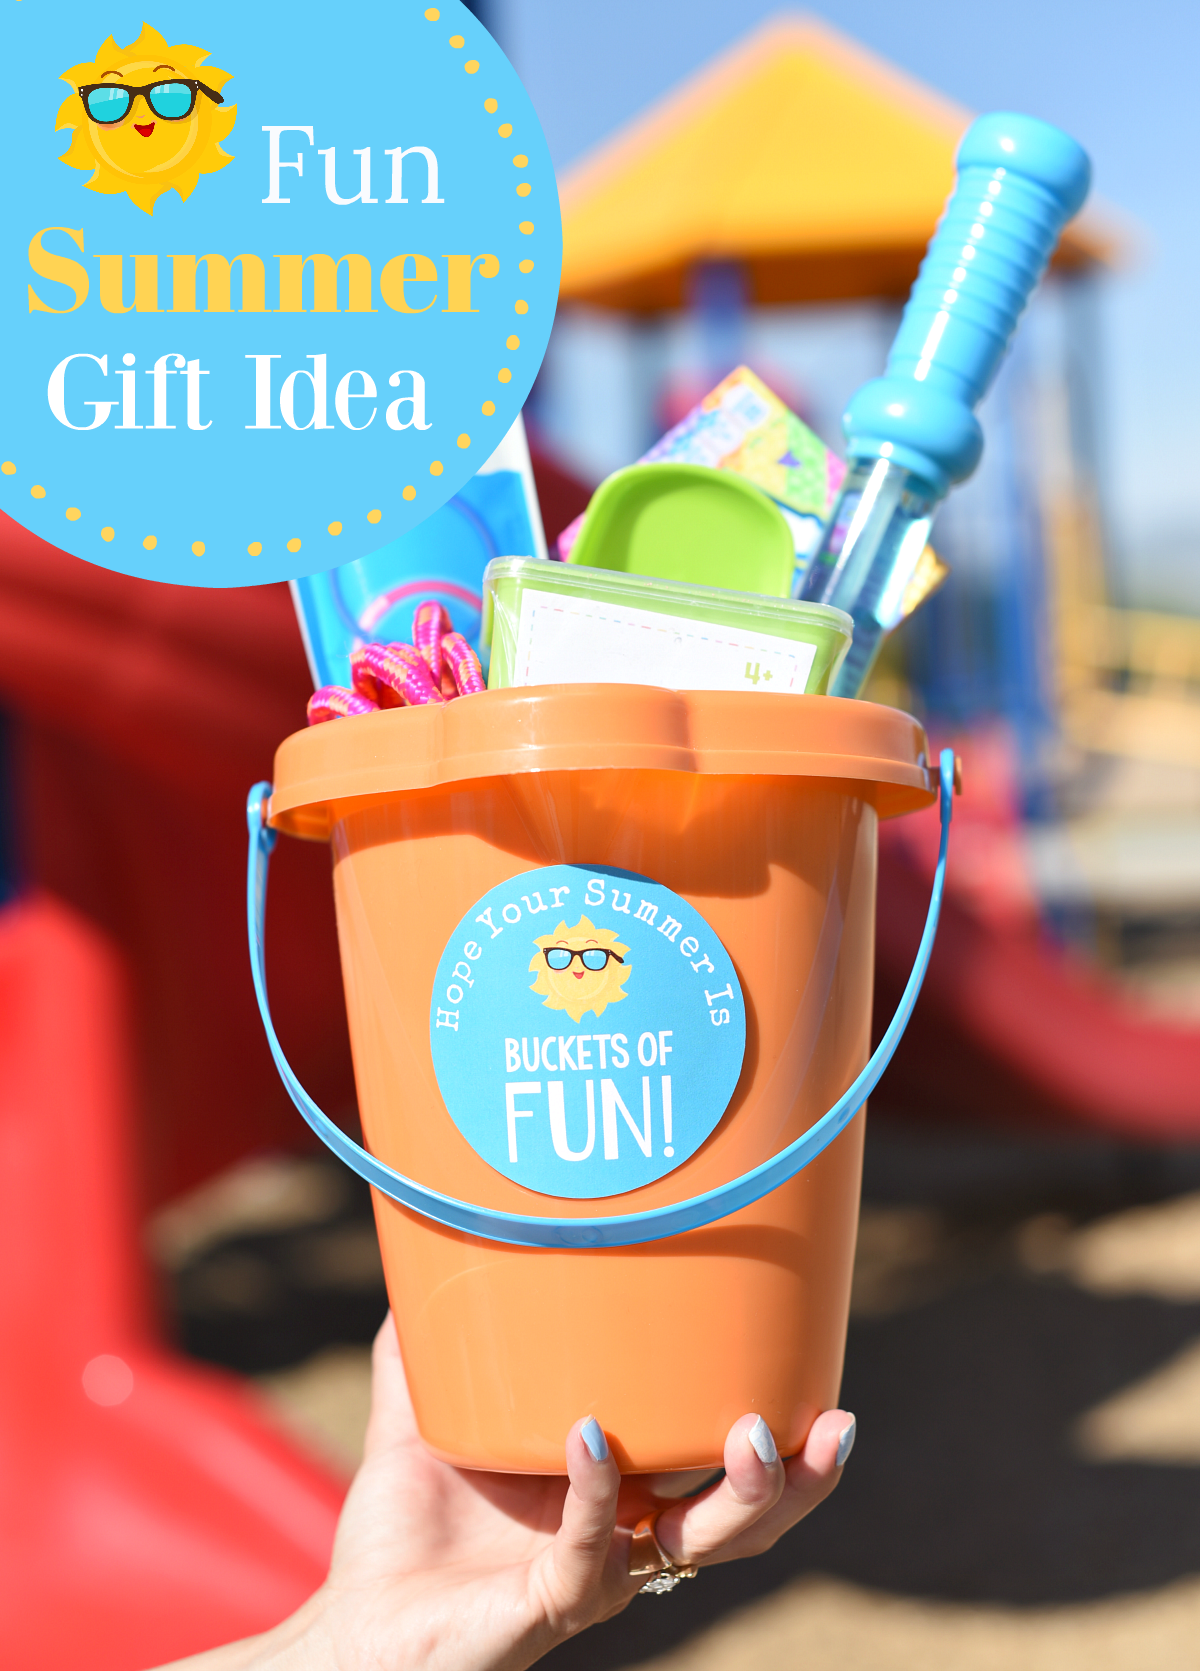 End of the Year Gifts for Students. This fun gift idea is the perfect way to celebrate the beginning of summer. #fungifts #fungiftideas #summer #summergifts